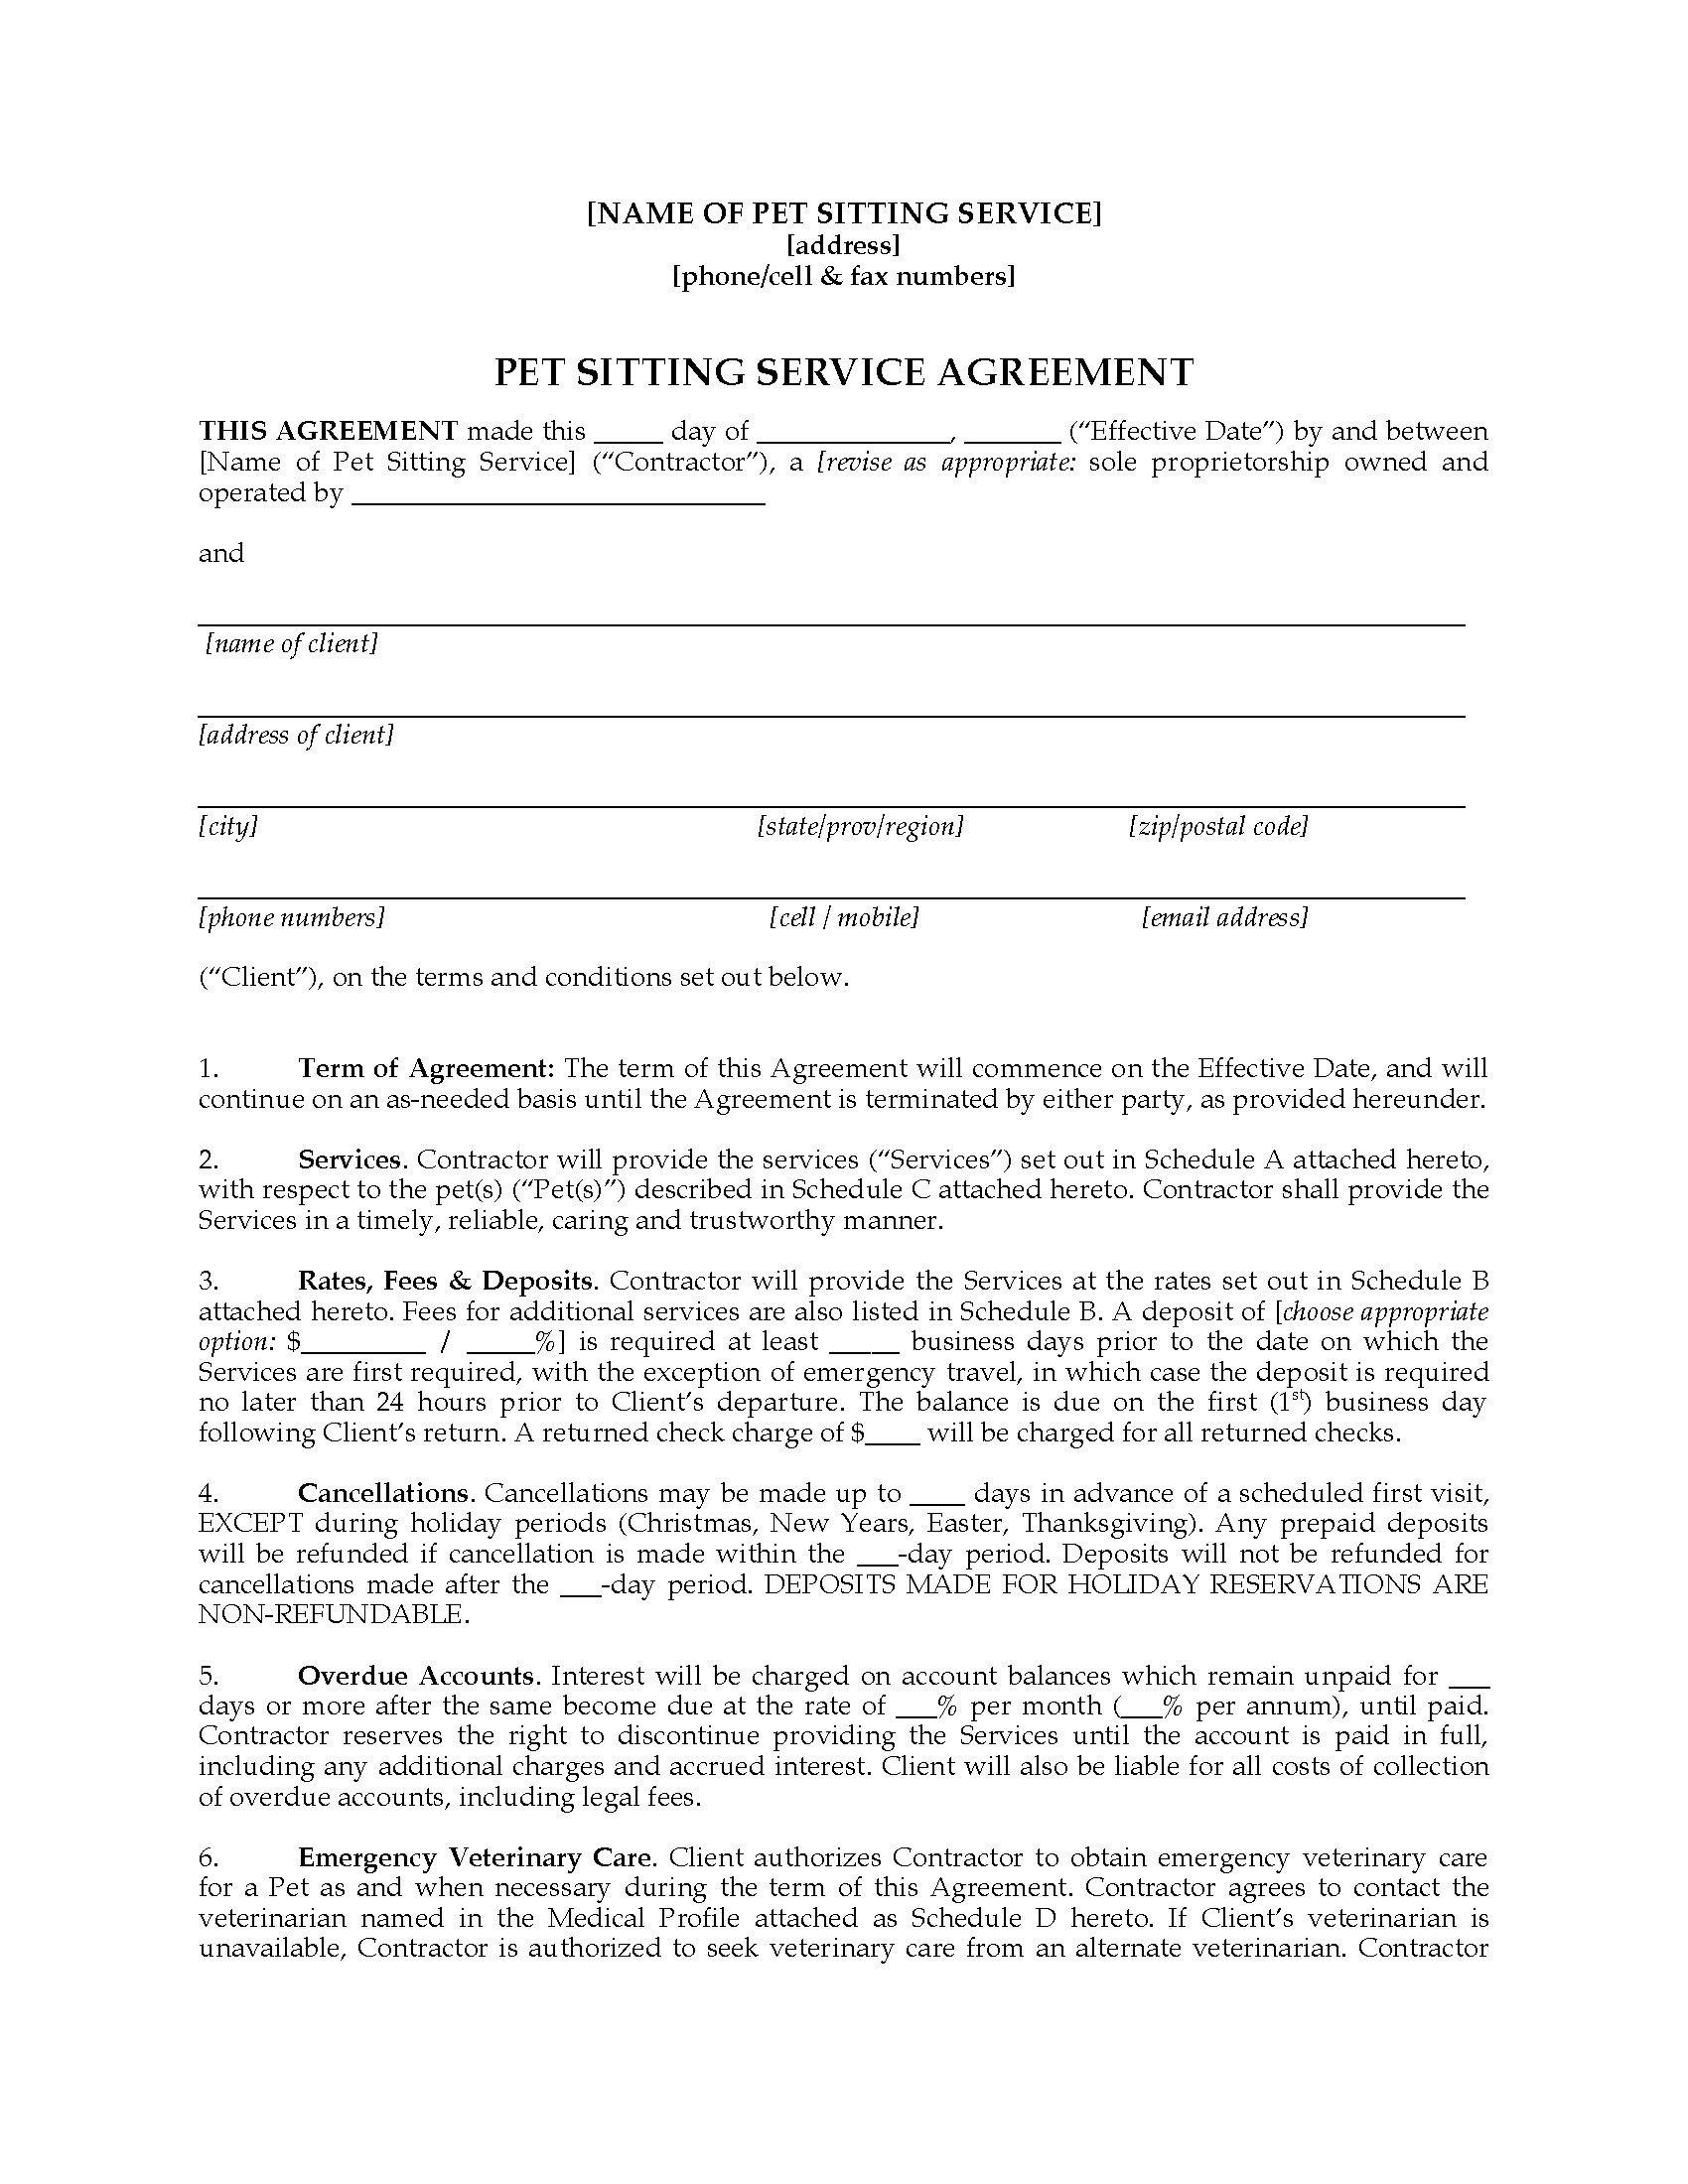 A dog boarding company can use this template to display all the details explaining the service that was provided for a pet owner's dog along with any. Pet Sitter Contract Forms Package Legal Forms And Business Templates Megadox Com